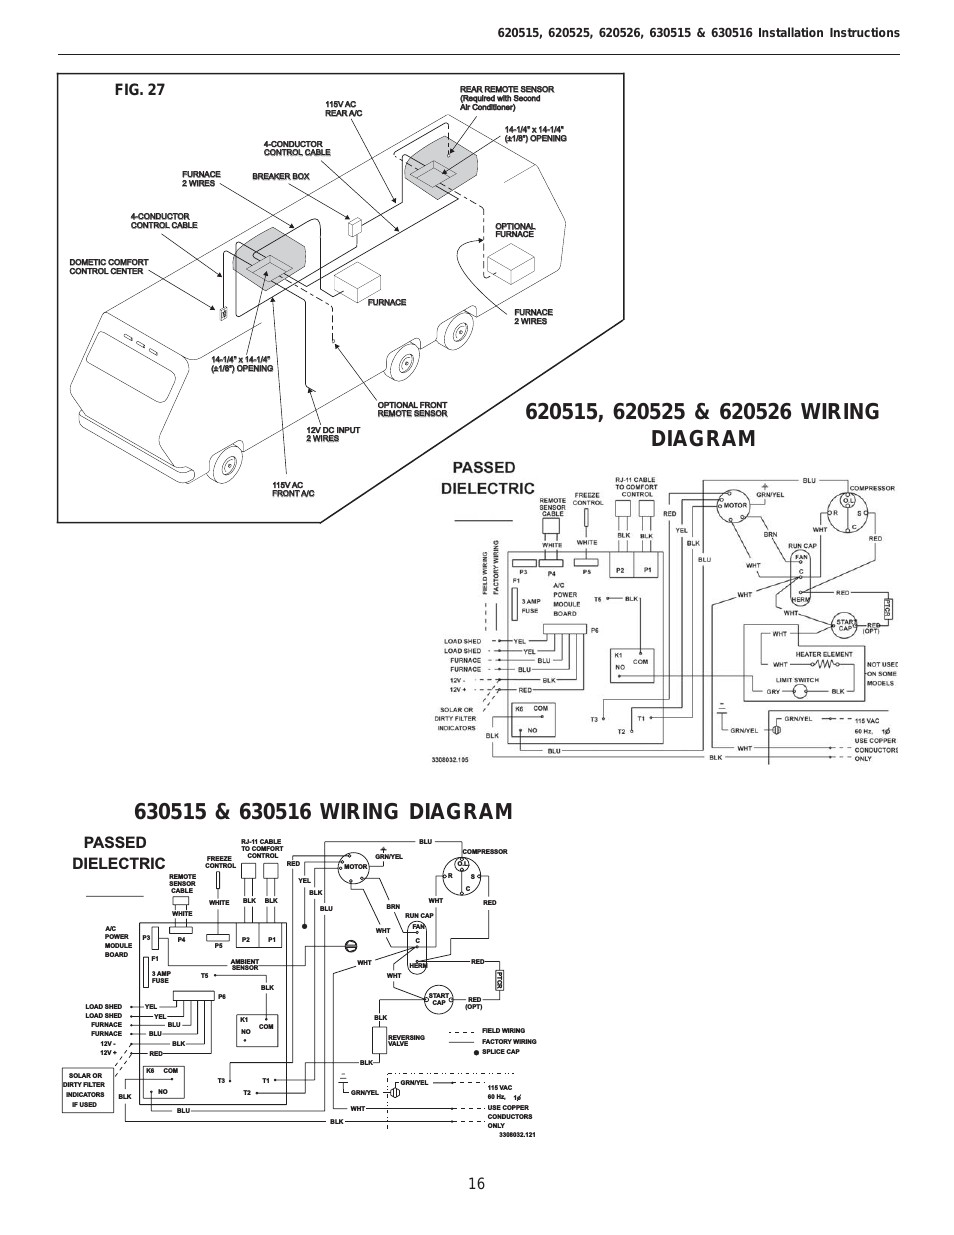 Dometic thermostat Wiring Diagram Awesome | Wiring Diagram Image